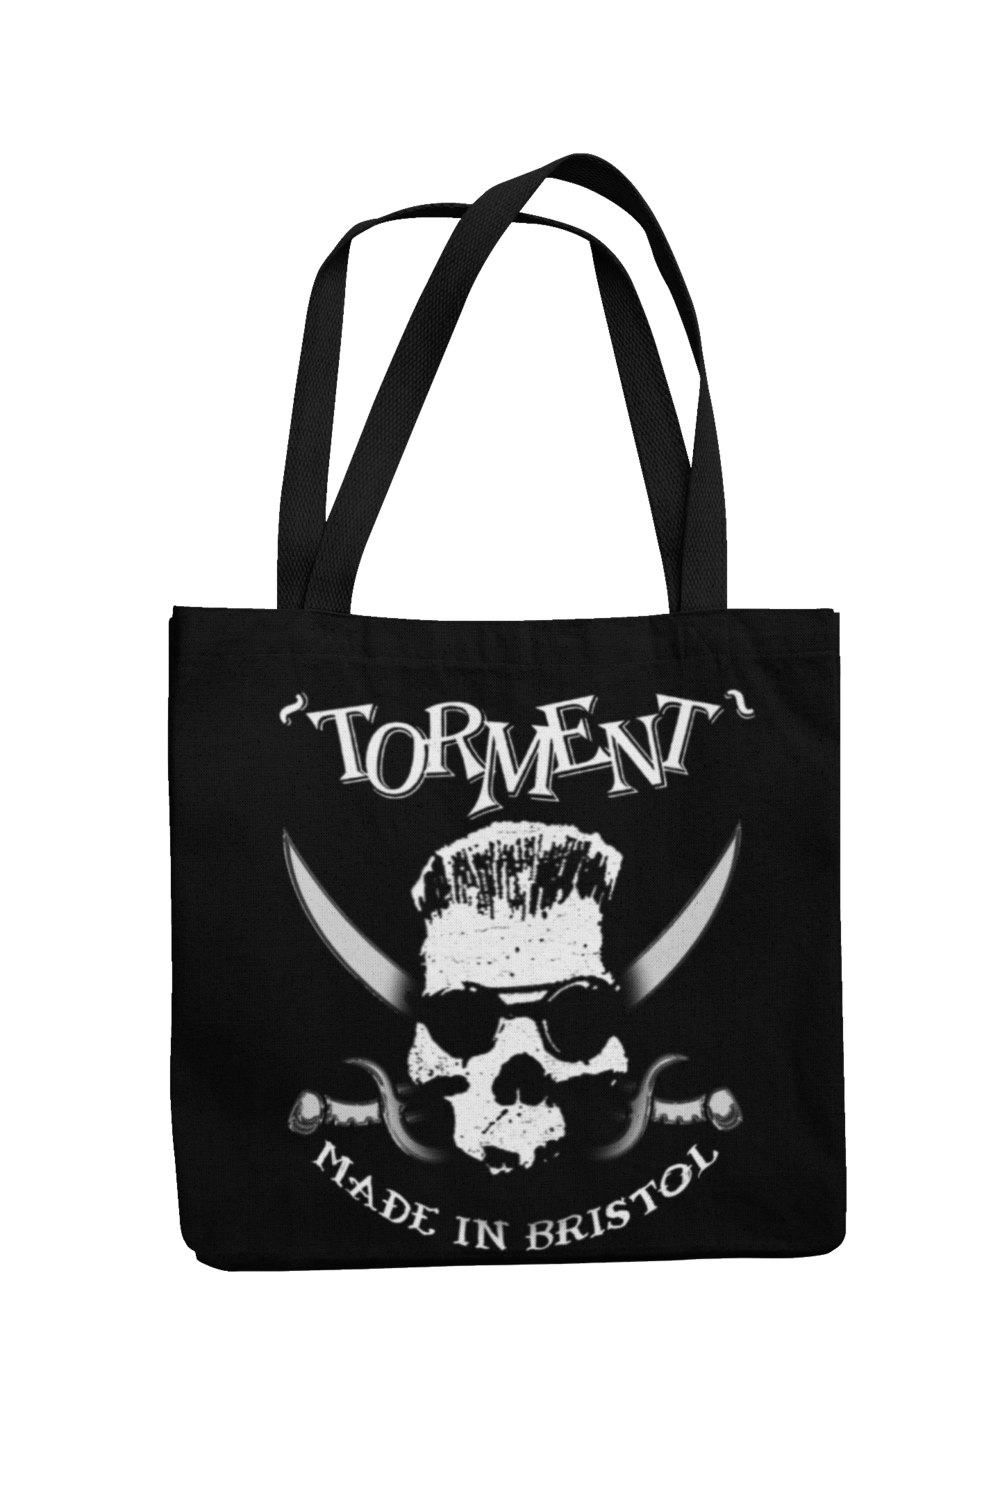 "TORMENT ""Made in Bristol"" Cotton Bag"